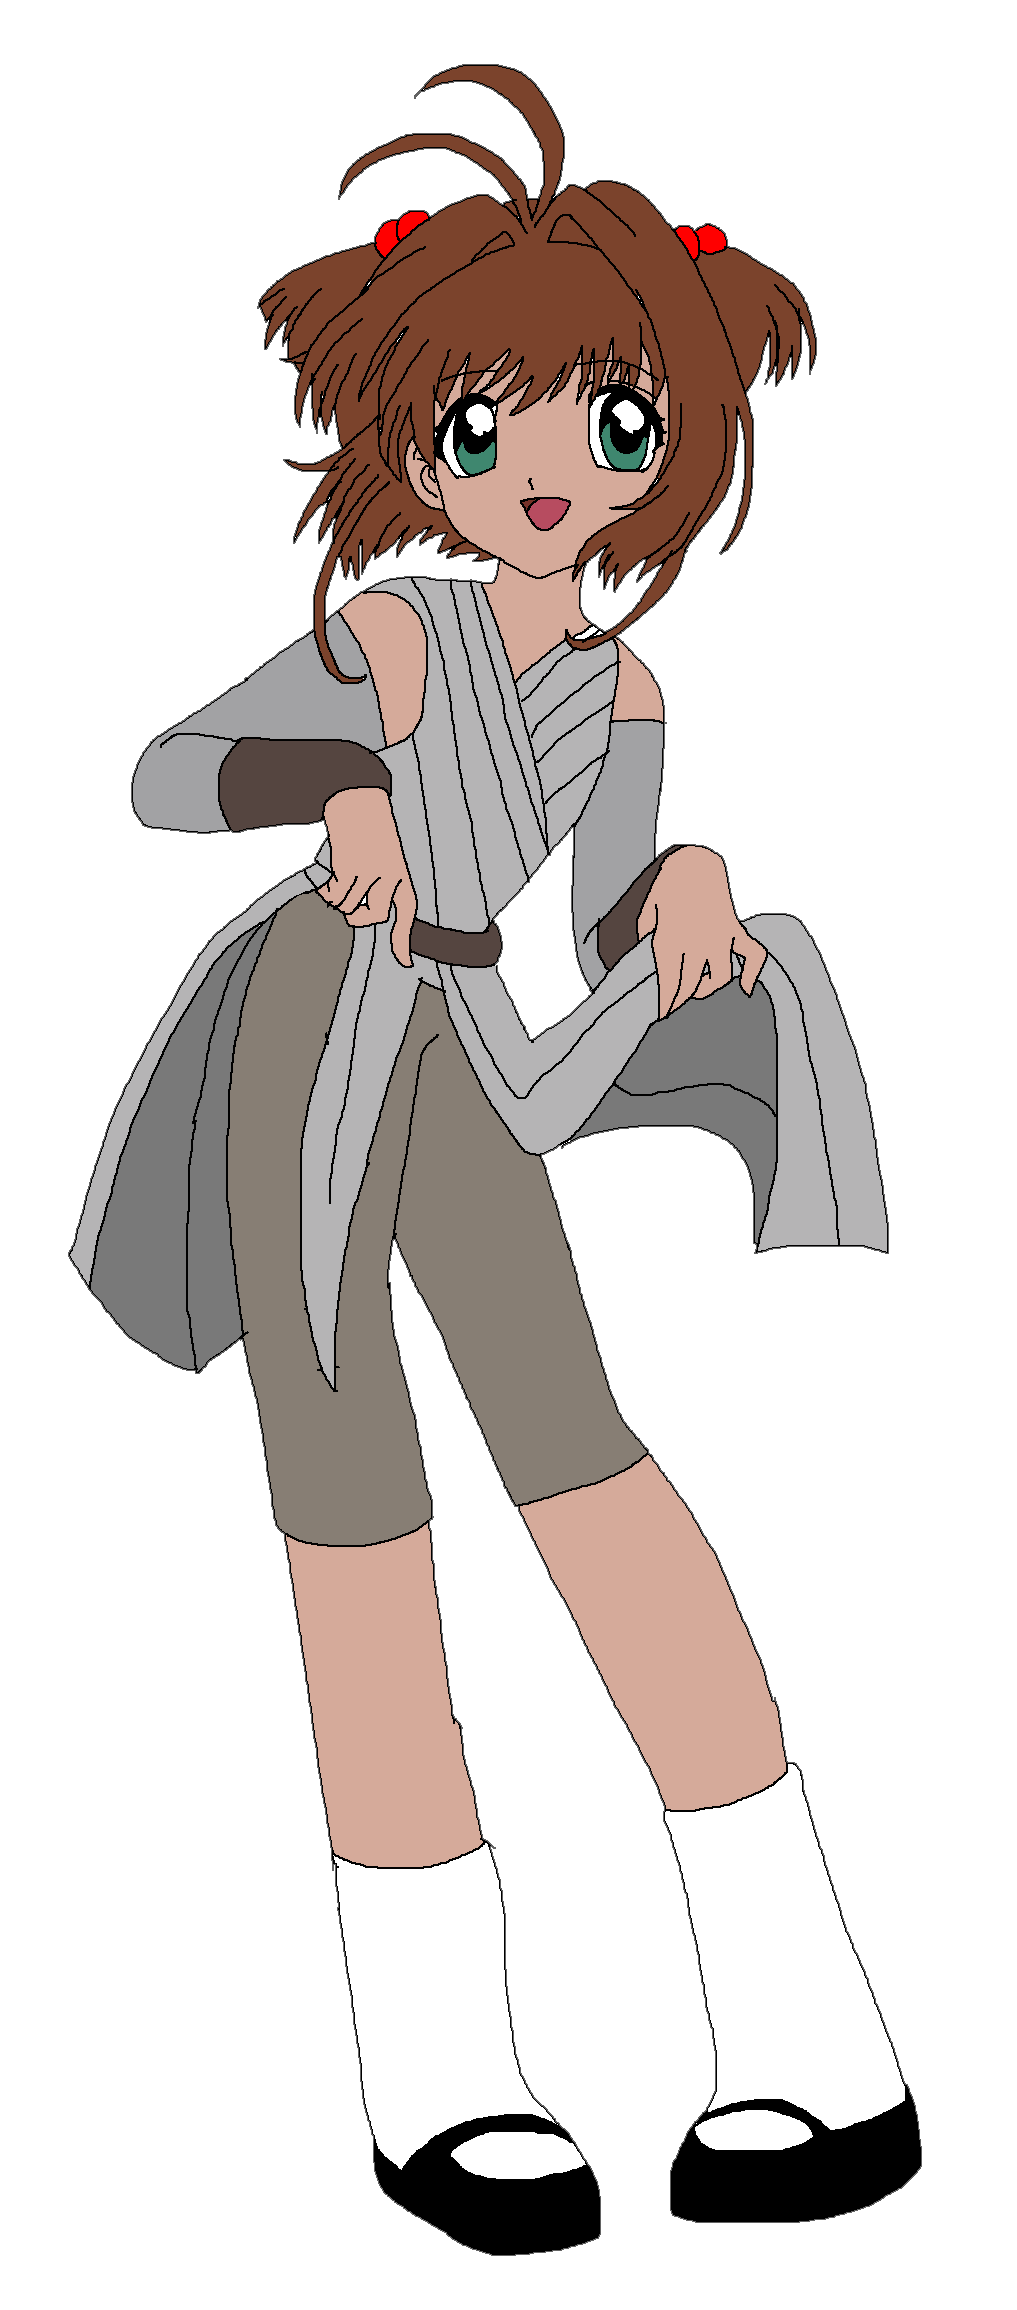 Sakura Kinomoto as Rey by Rainbow-Dash-Rockz